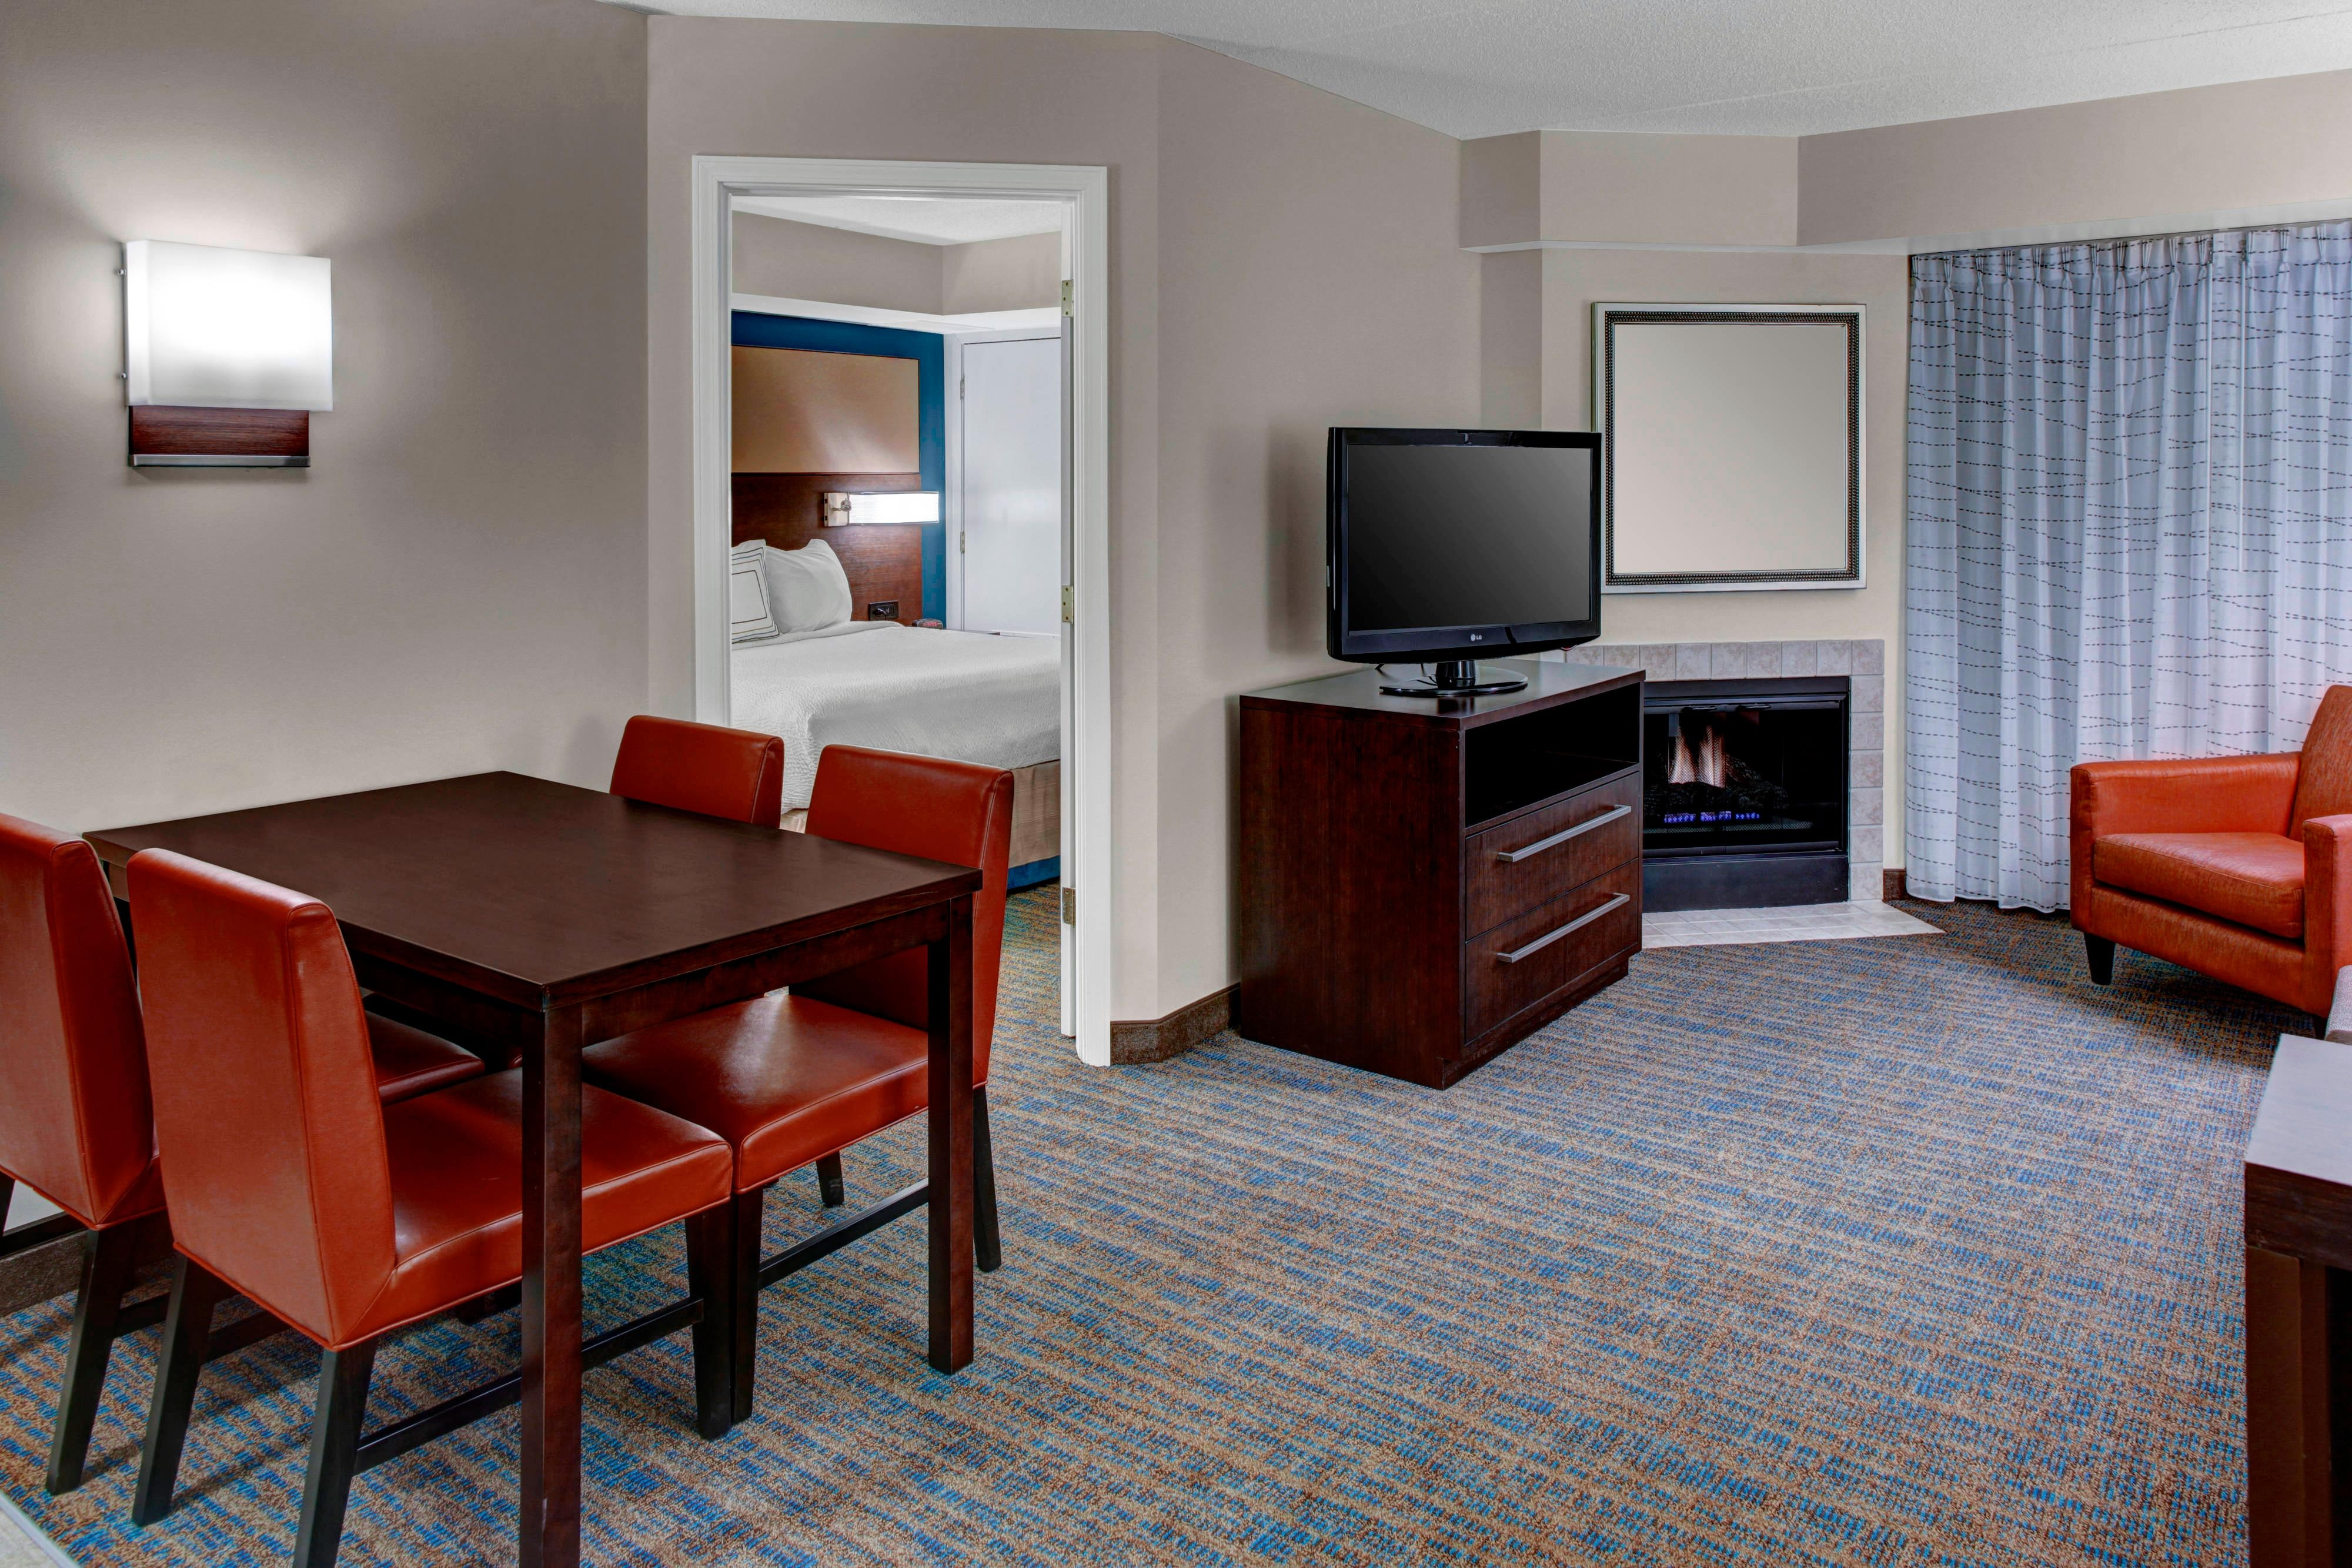 Cleveland hotel cleveland oh hotel cleveland ohio hotel for Bedroom suites in cleveland ohio